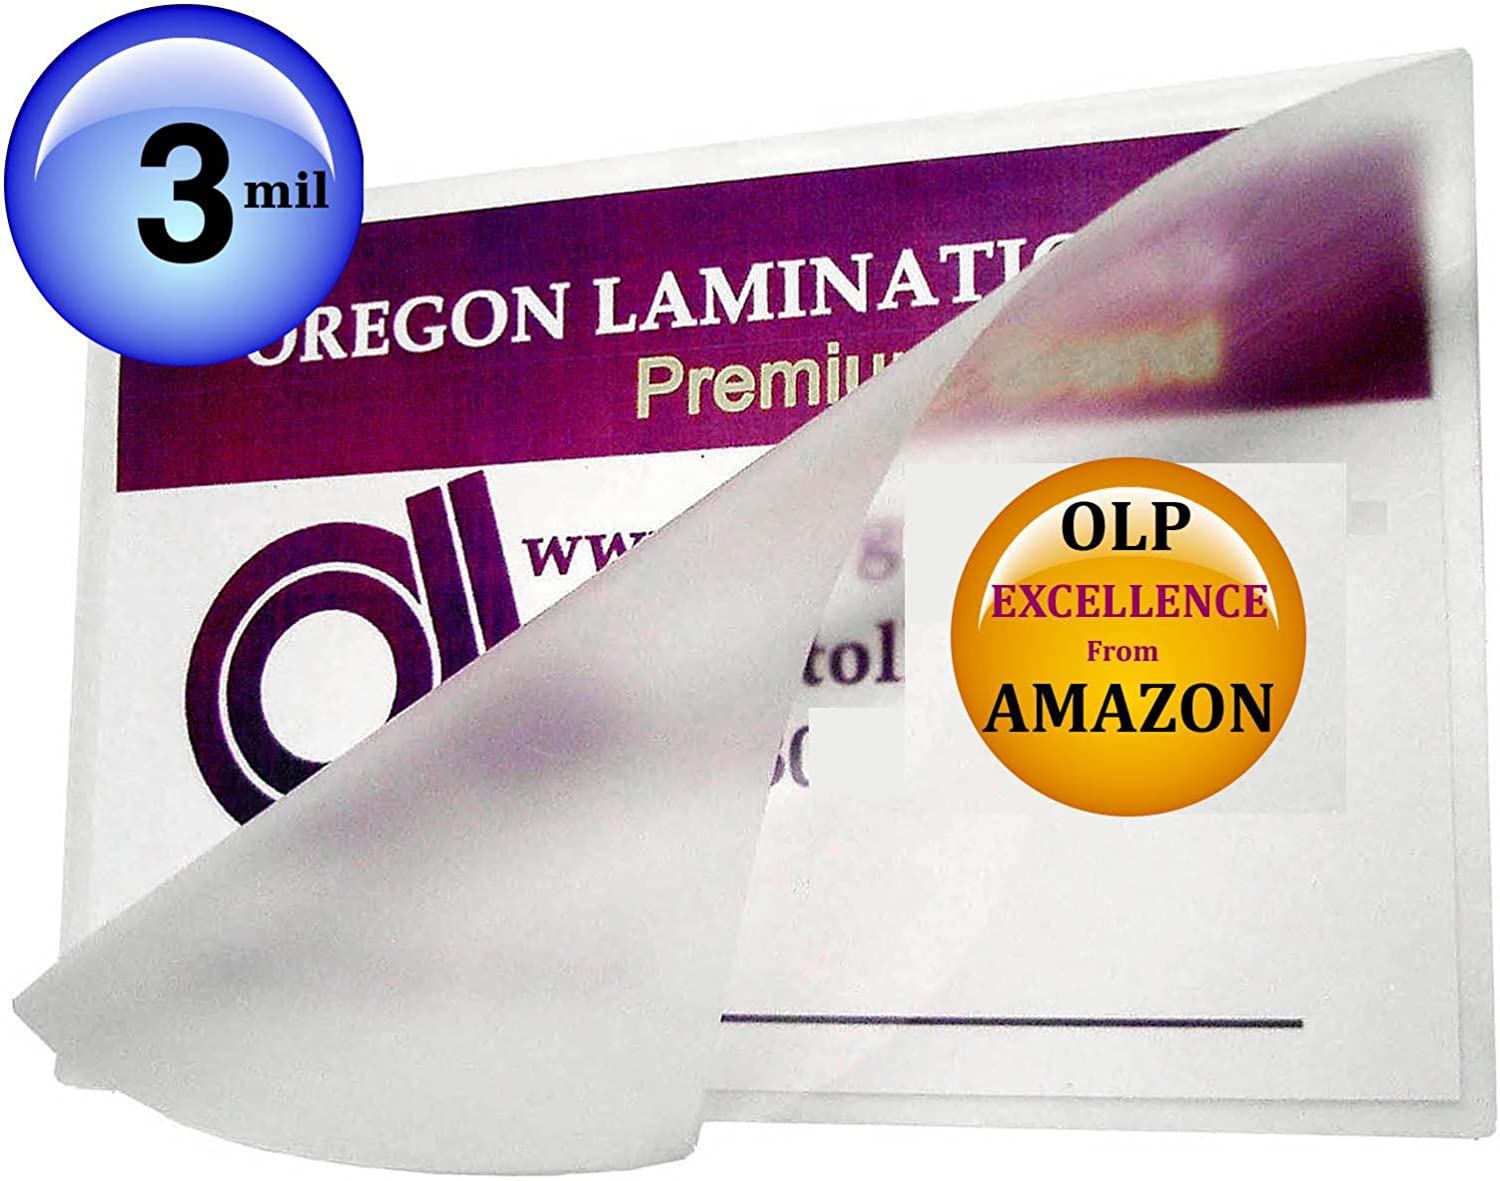 3 Mil A4 Laminating Pouches Qty 100 Hot 8.75 x 12.25 Laminator Sleeves 222mm x 311mm